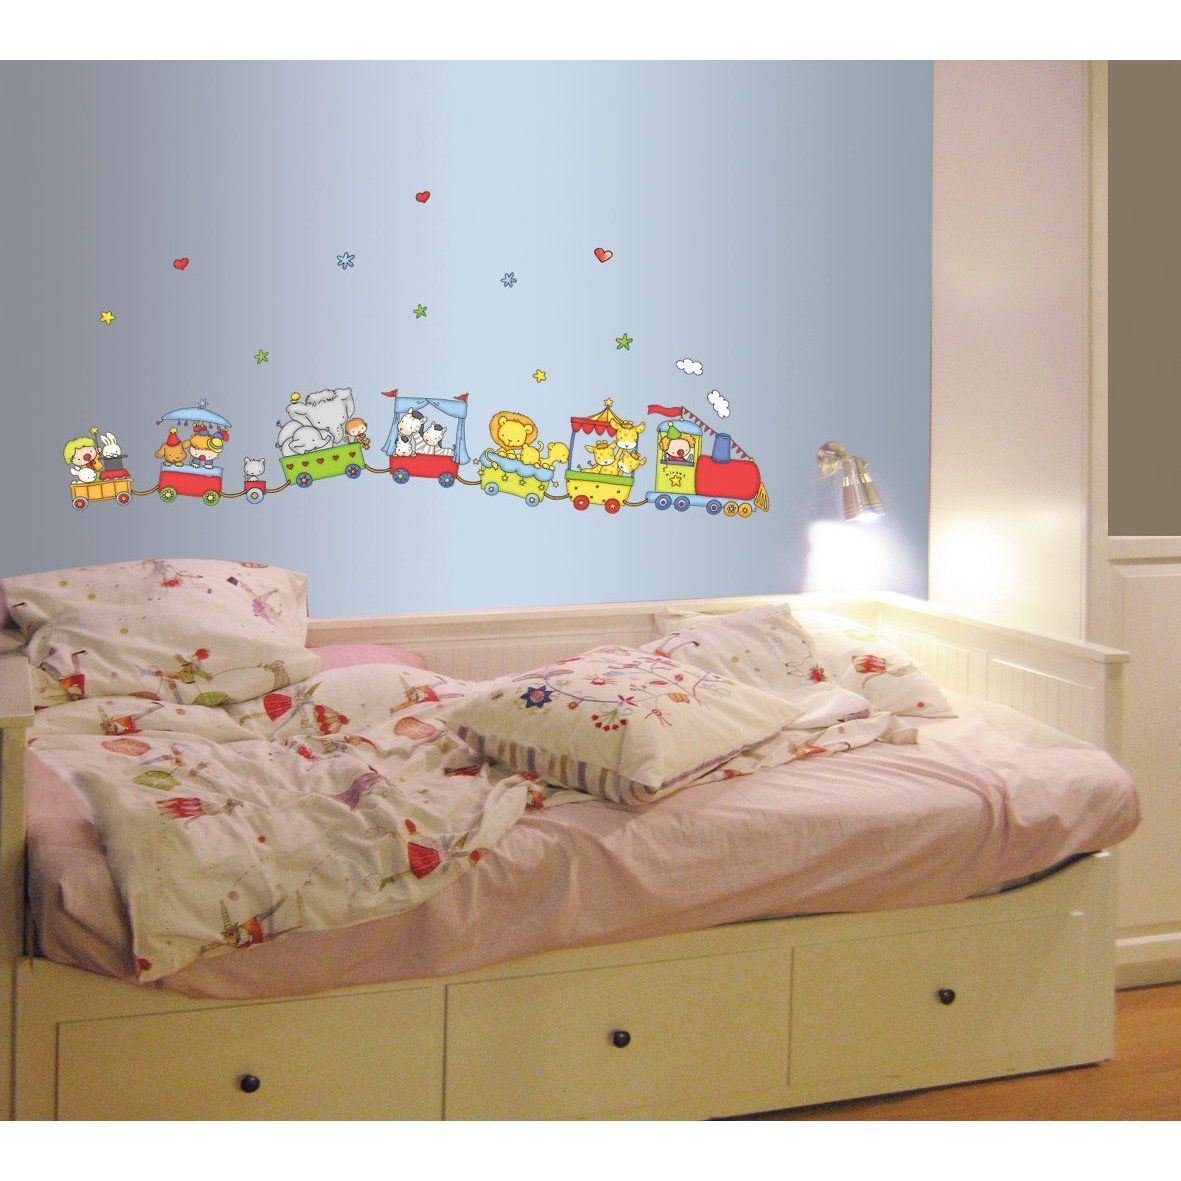 Bedroom wall decoration for kids - Kids Bedroom Flying Train Ideas On Blue Wall For Kids Bedroom Kids Room Design With Wallpaper Ideas Interior Design Giesendesign